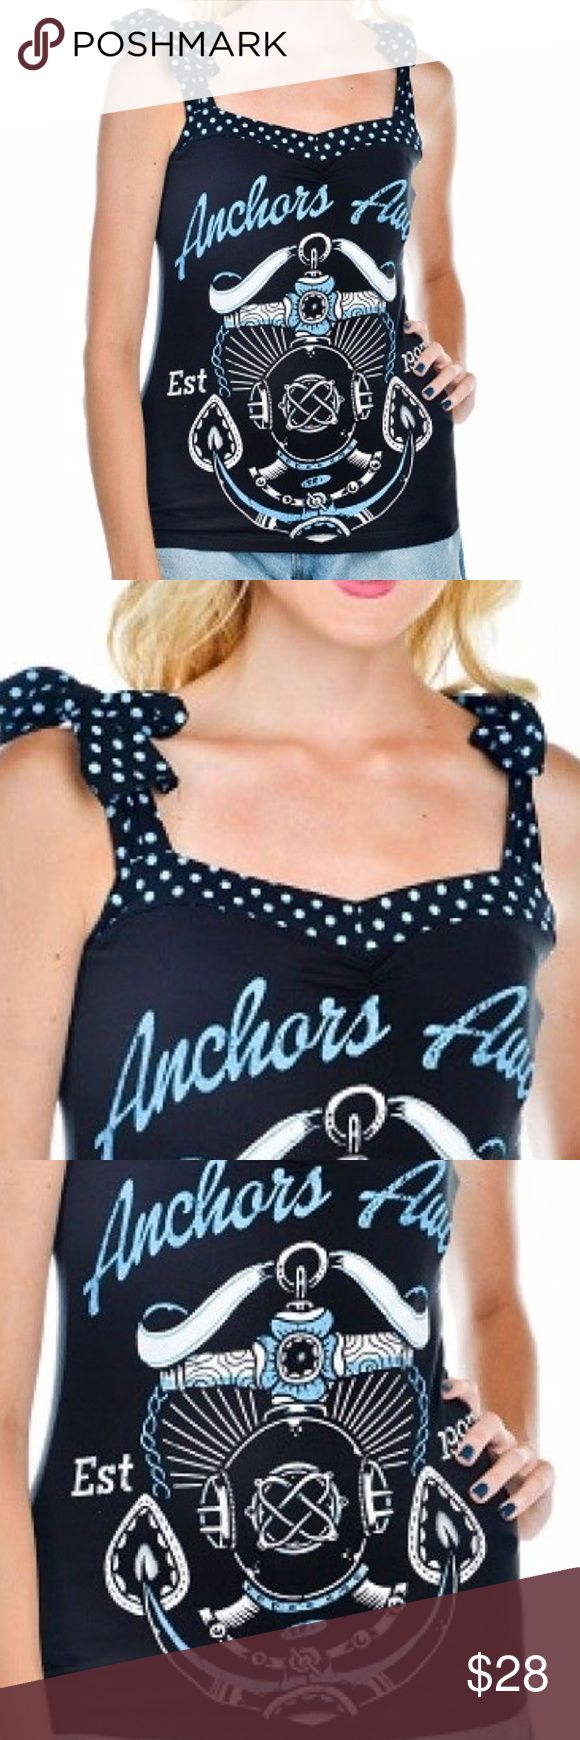 """Too Fast Annabel Bow Top Scuba Helmet Anchor Shirt Brand New with Tags Sold out in stores Fitted jersey top with gathers at the bust and straps that tie at the shoulders Polka dot straps and trim. Anchors Away graphic on the front. Content & Care:  Cotton/Spandex Machine wash cold. Tumble dry low. Annabel Bow Tank                     S         ML       XL Bust27 1/2""""29""""30 1/2""""32"""" Waist25 1/2""""27""""28 1/2""""30"""" Too Fast Tops"""